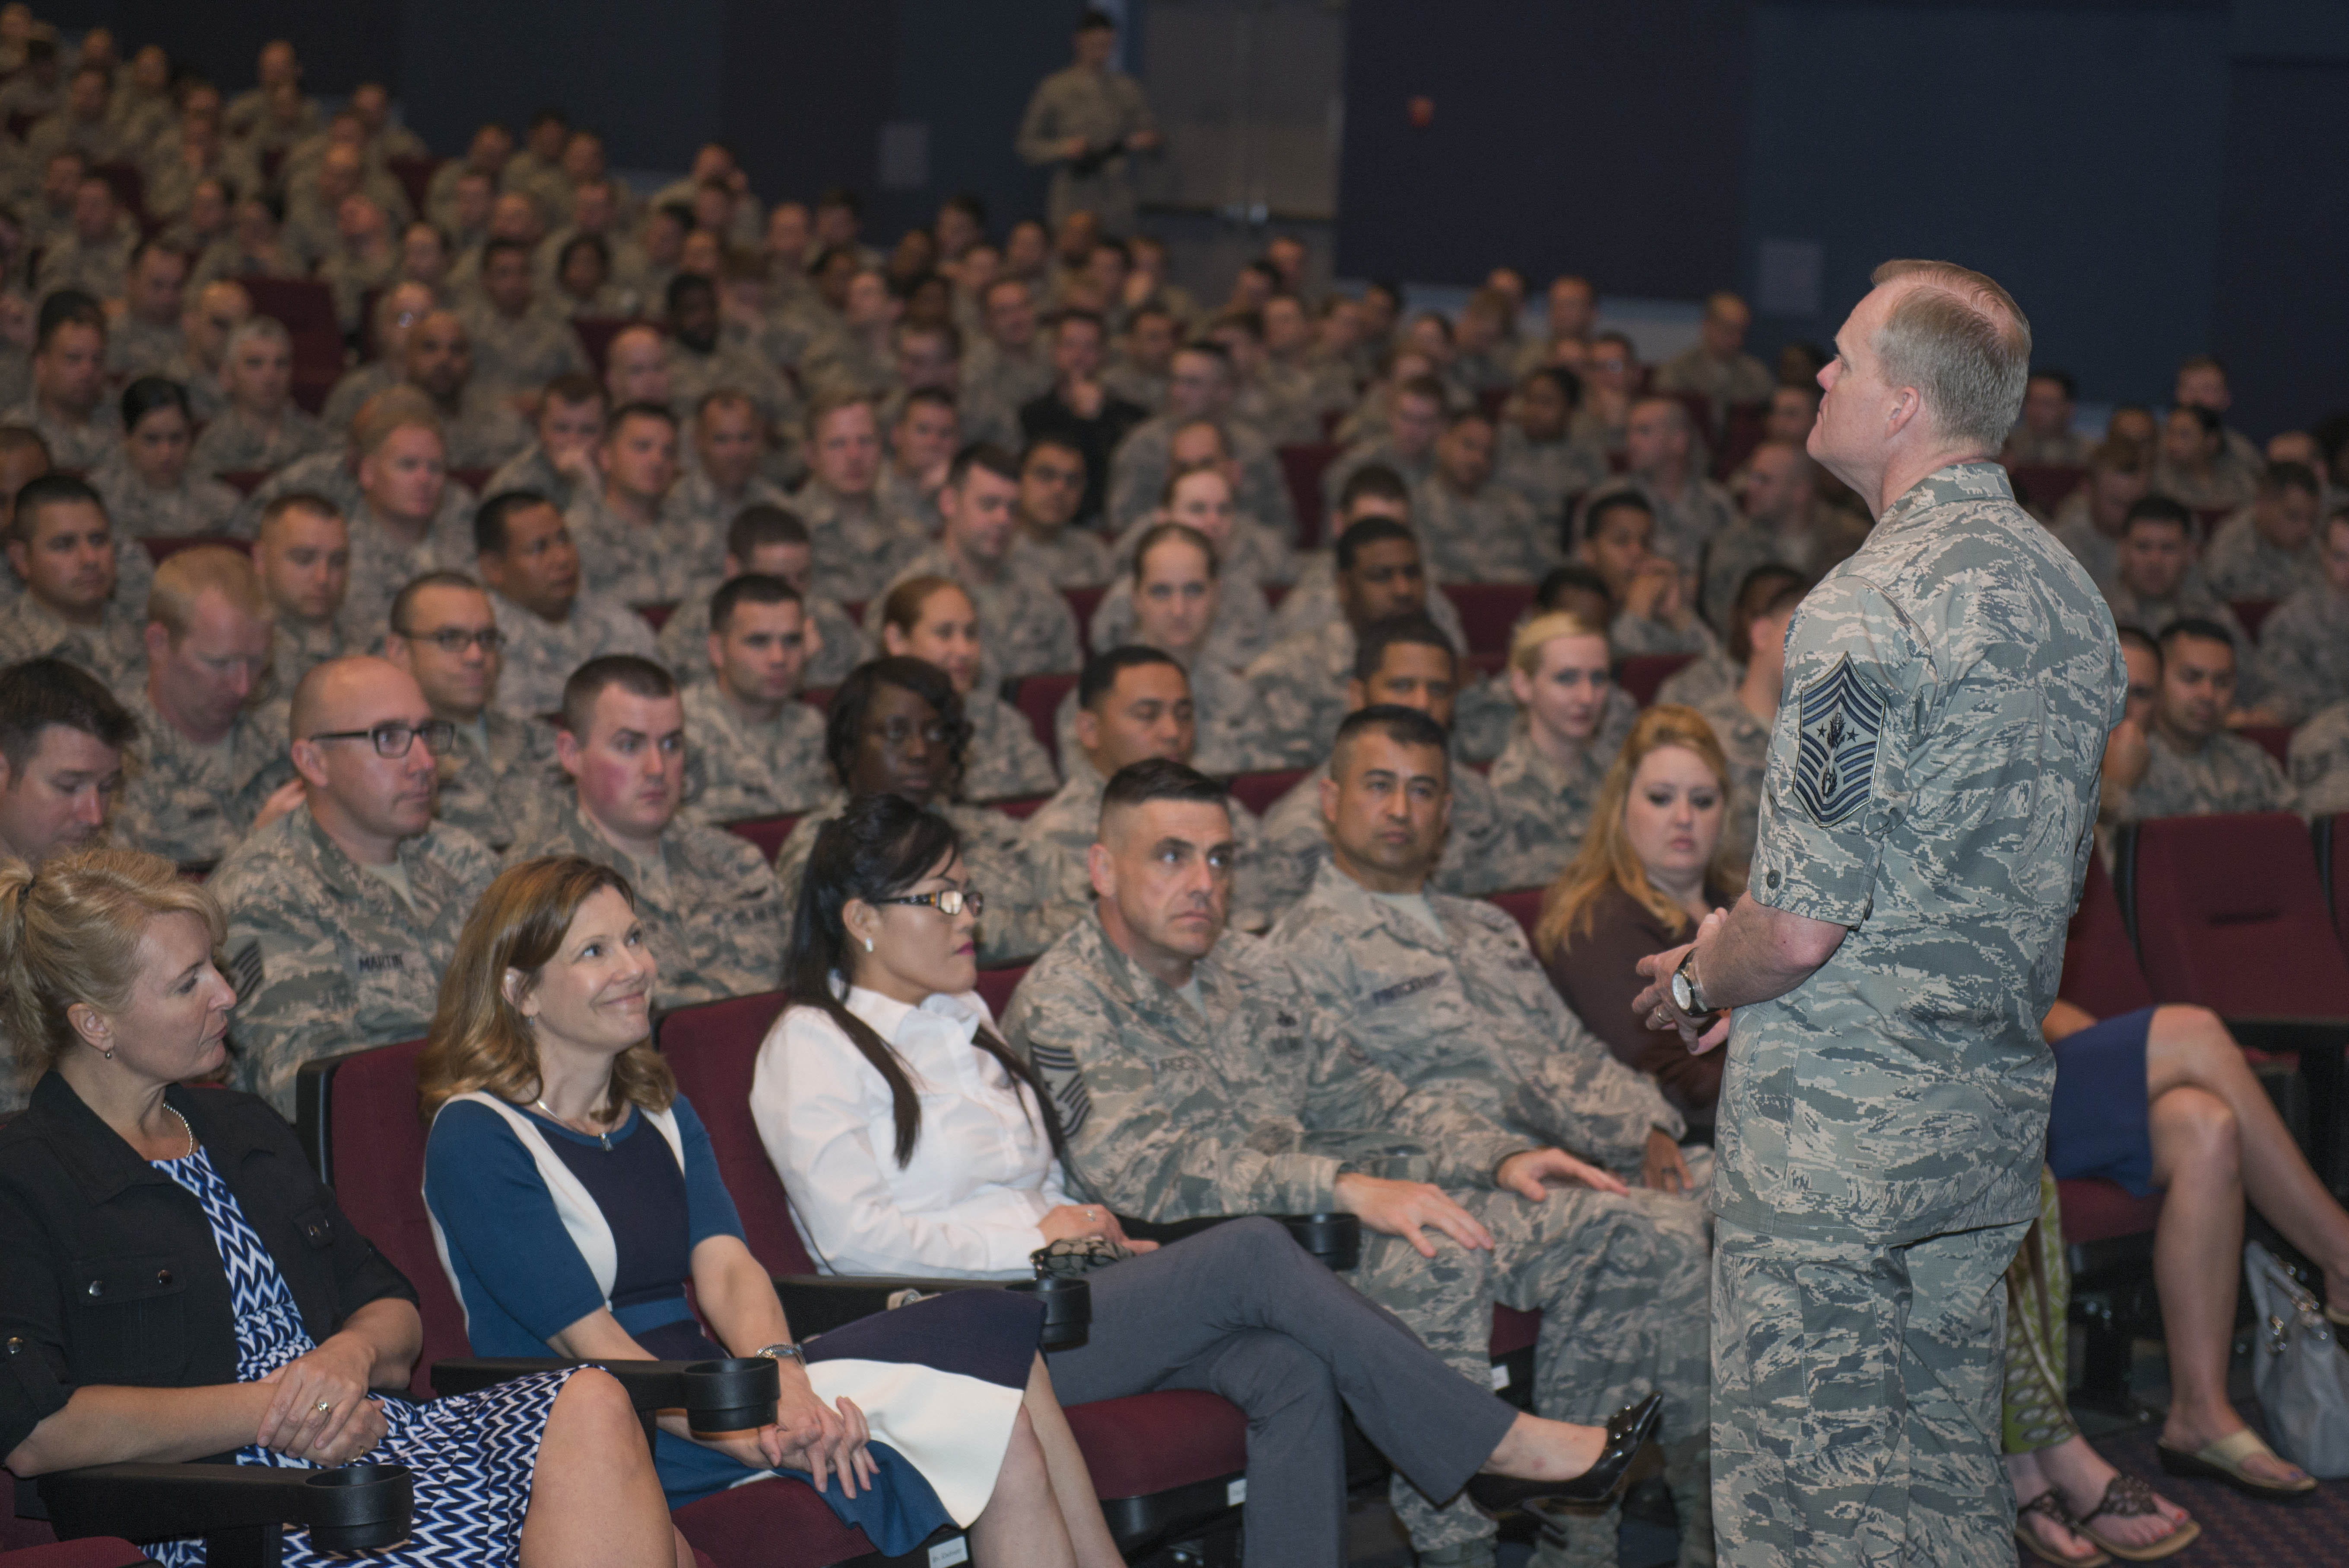 sheppard afb single men Sound off: best and worst bases in the air force 63 colorado offers so much to do for families and single airmen sheppard afb reply.